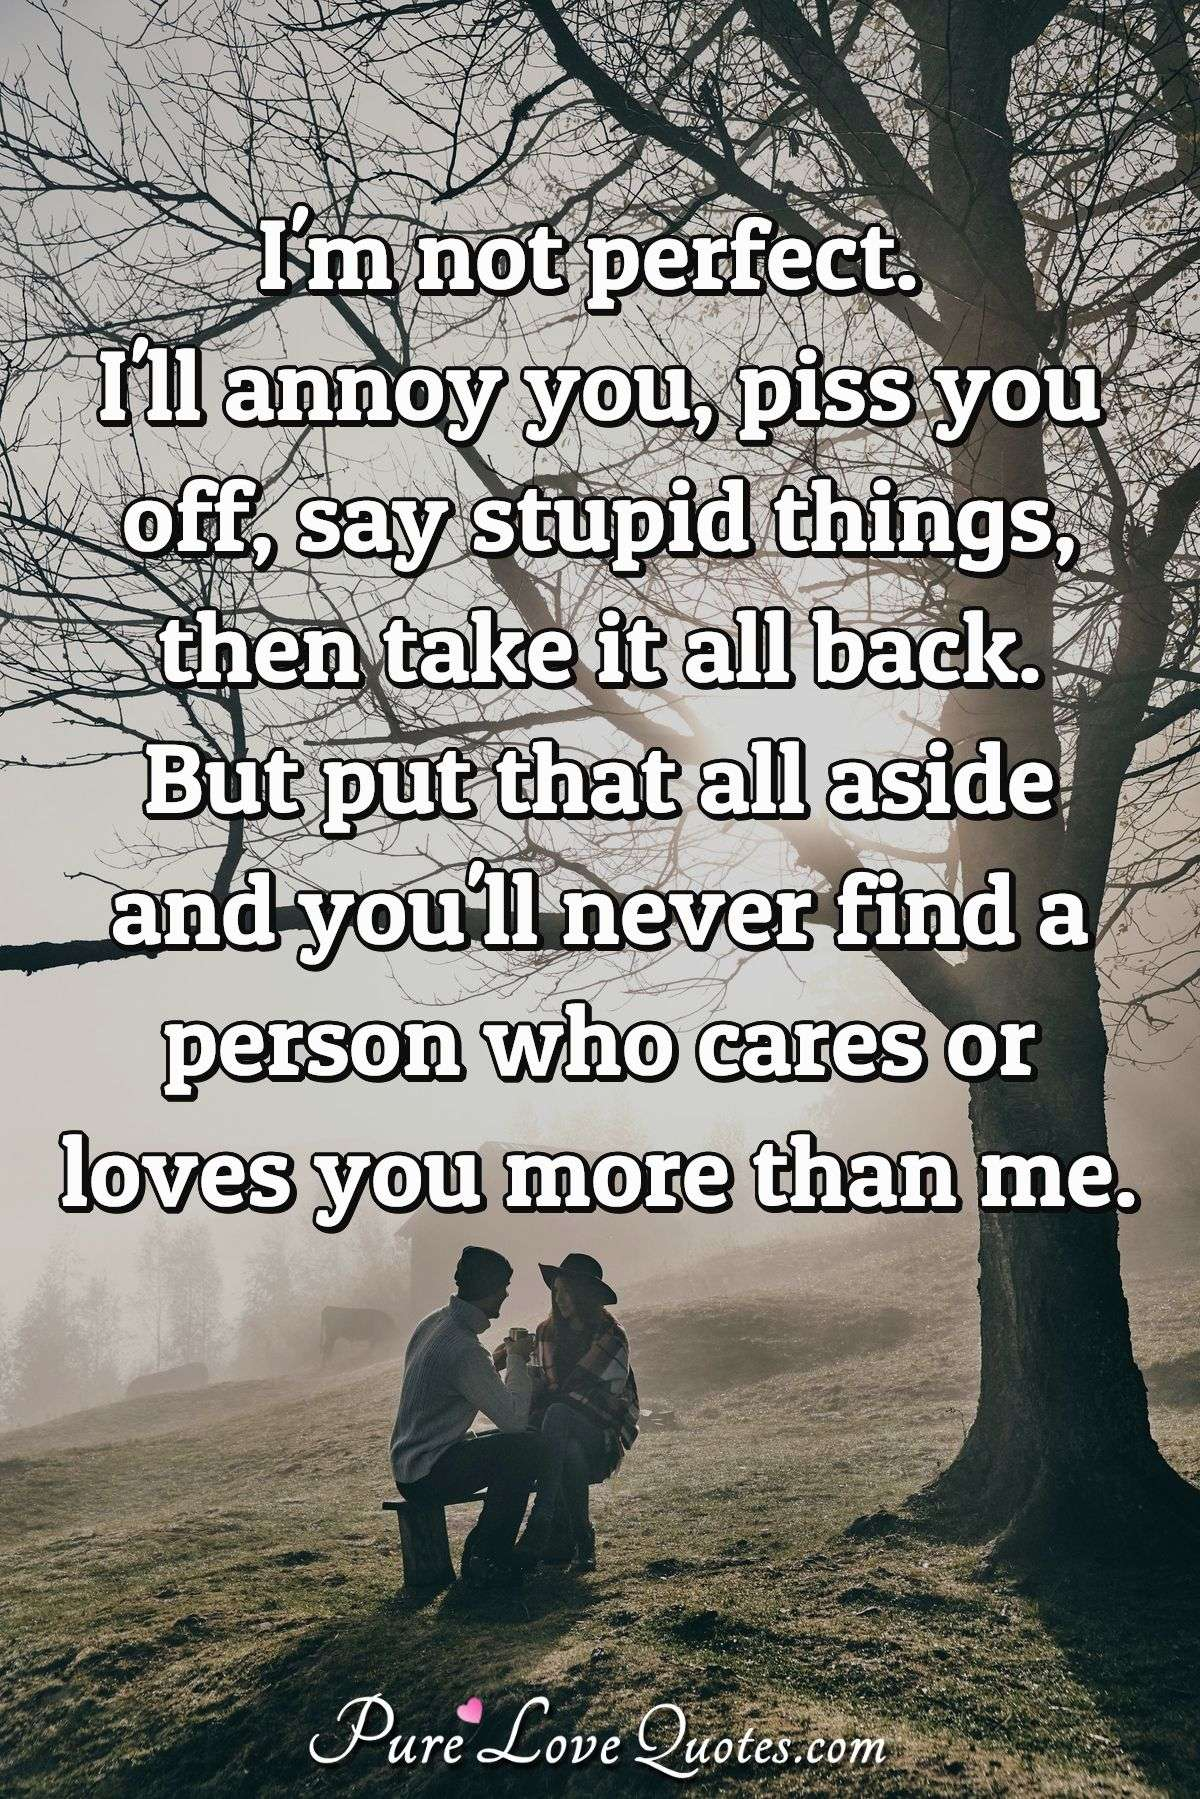 I'm not perfect. I'll annoy you, piss you off, say stupid things, then take it all back. But put that all aside and you'll never find a person who cares or loves you more than me. - Anonymous